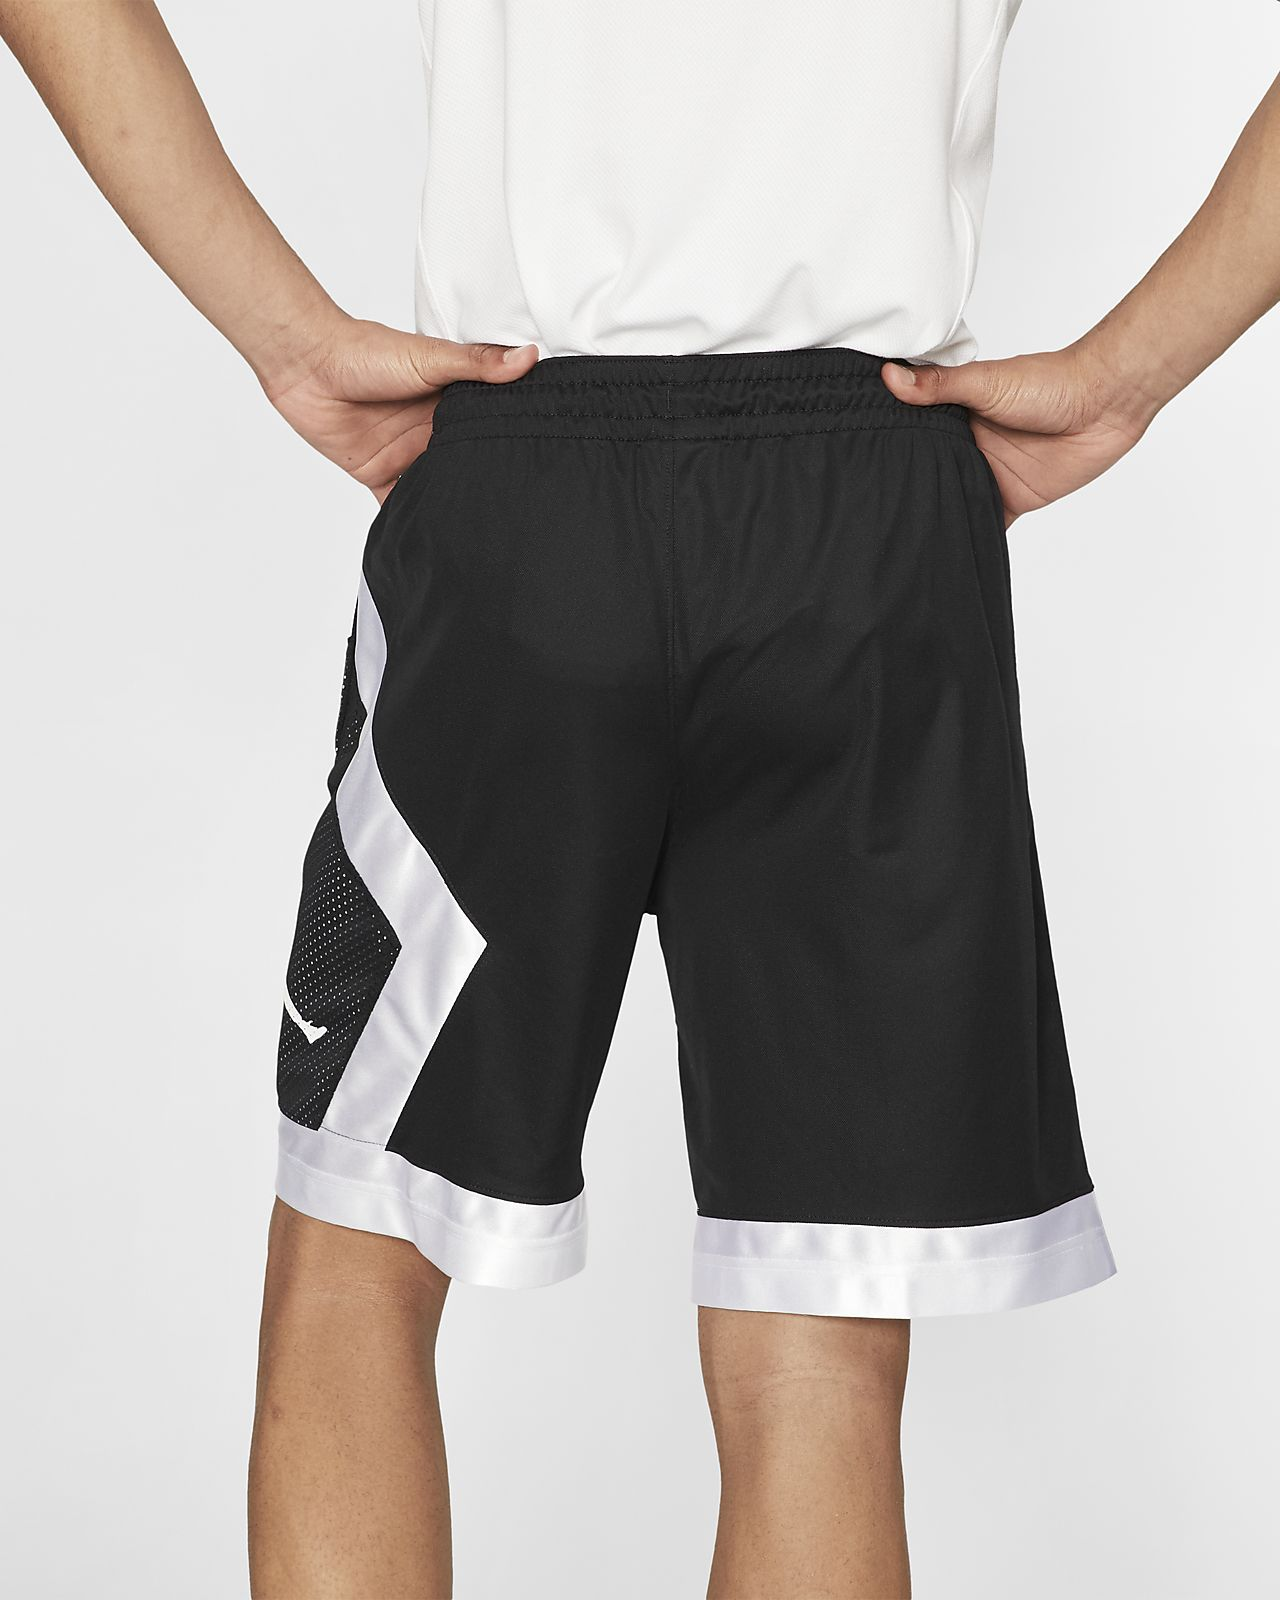 Men/'s Performance Closed Mesh Shorts With Pockets 5 Pack